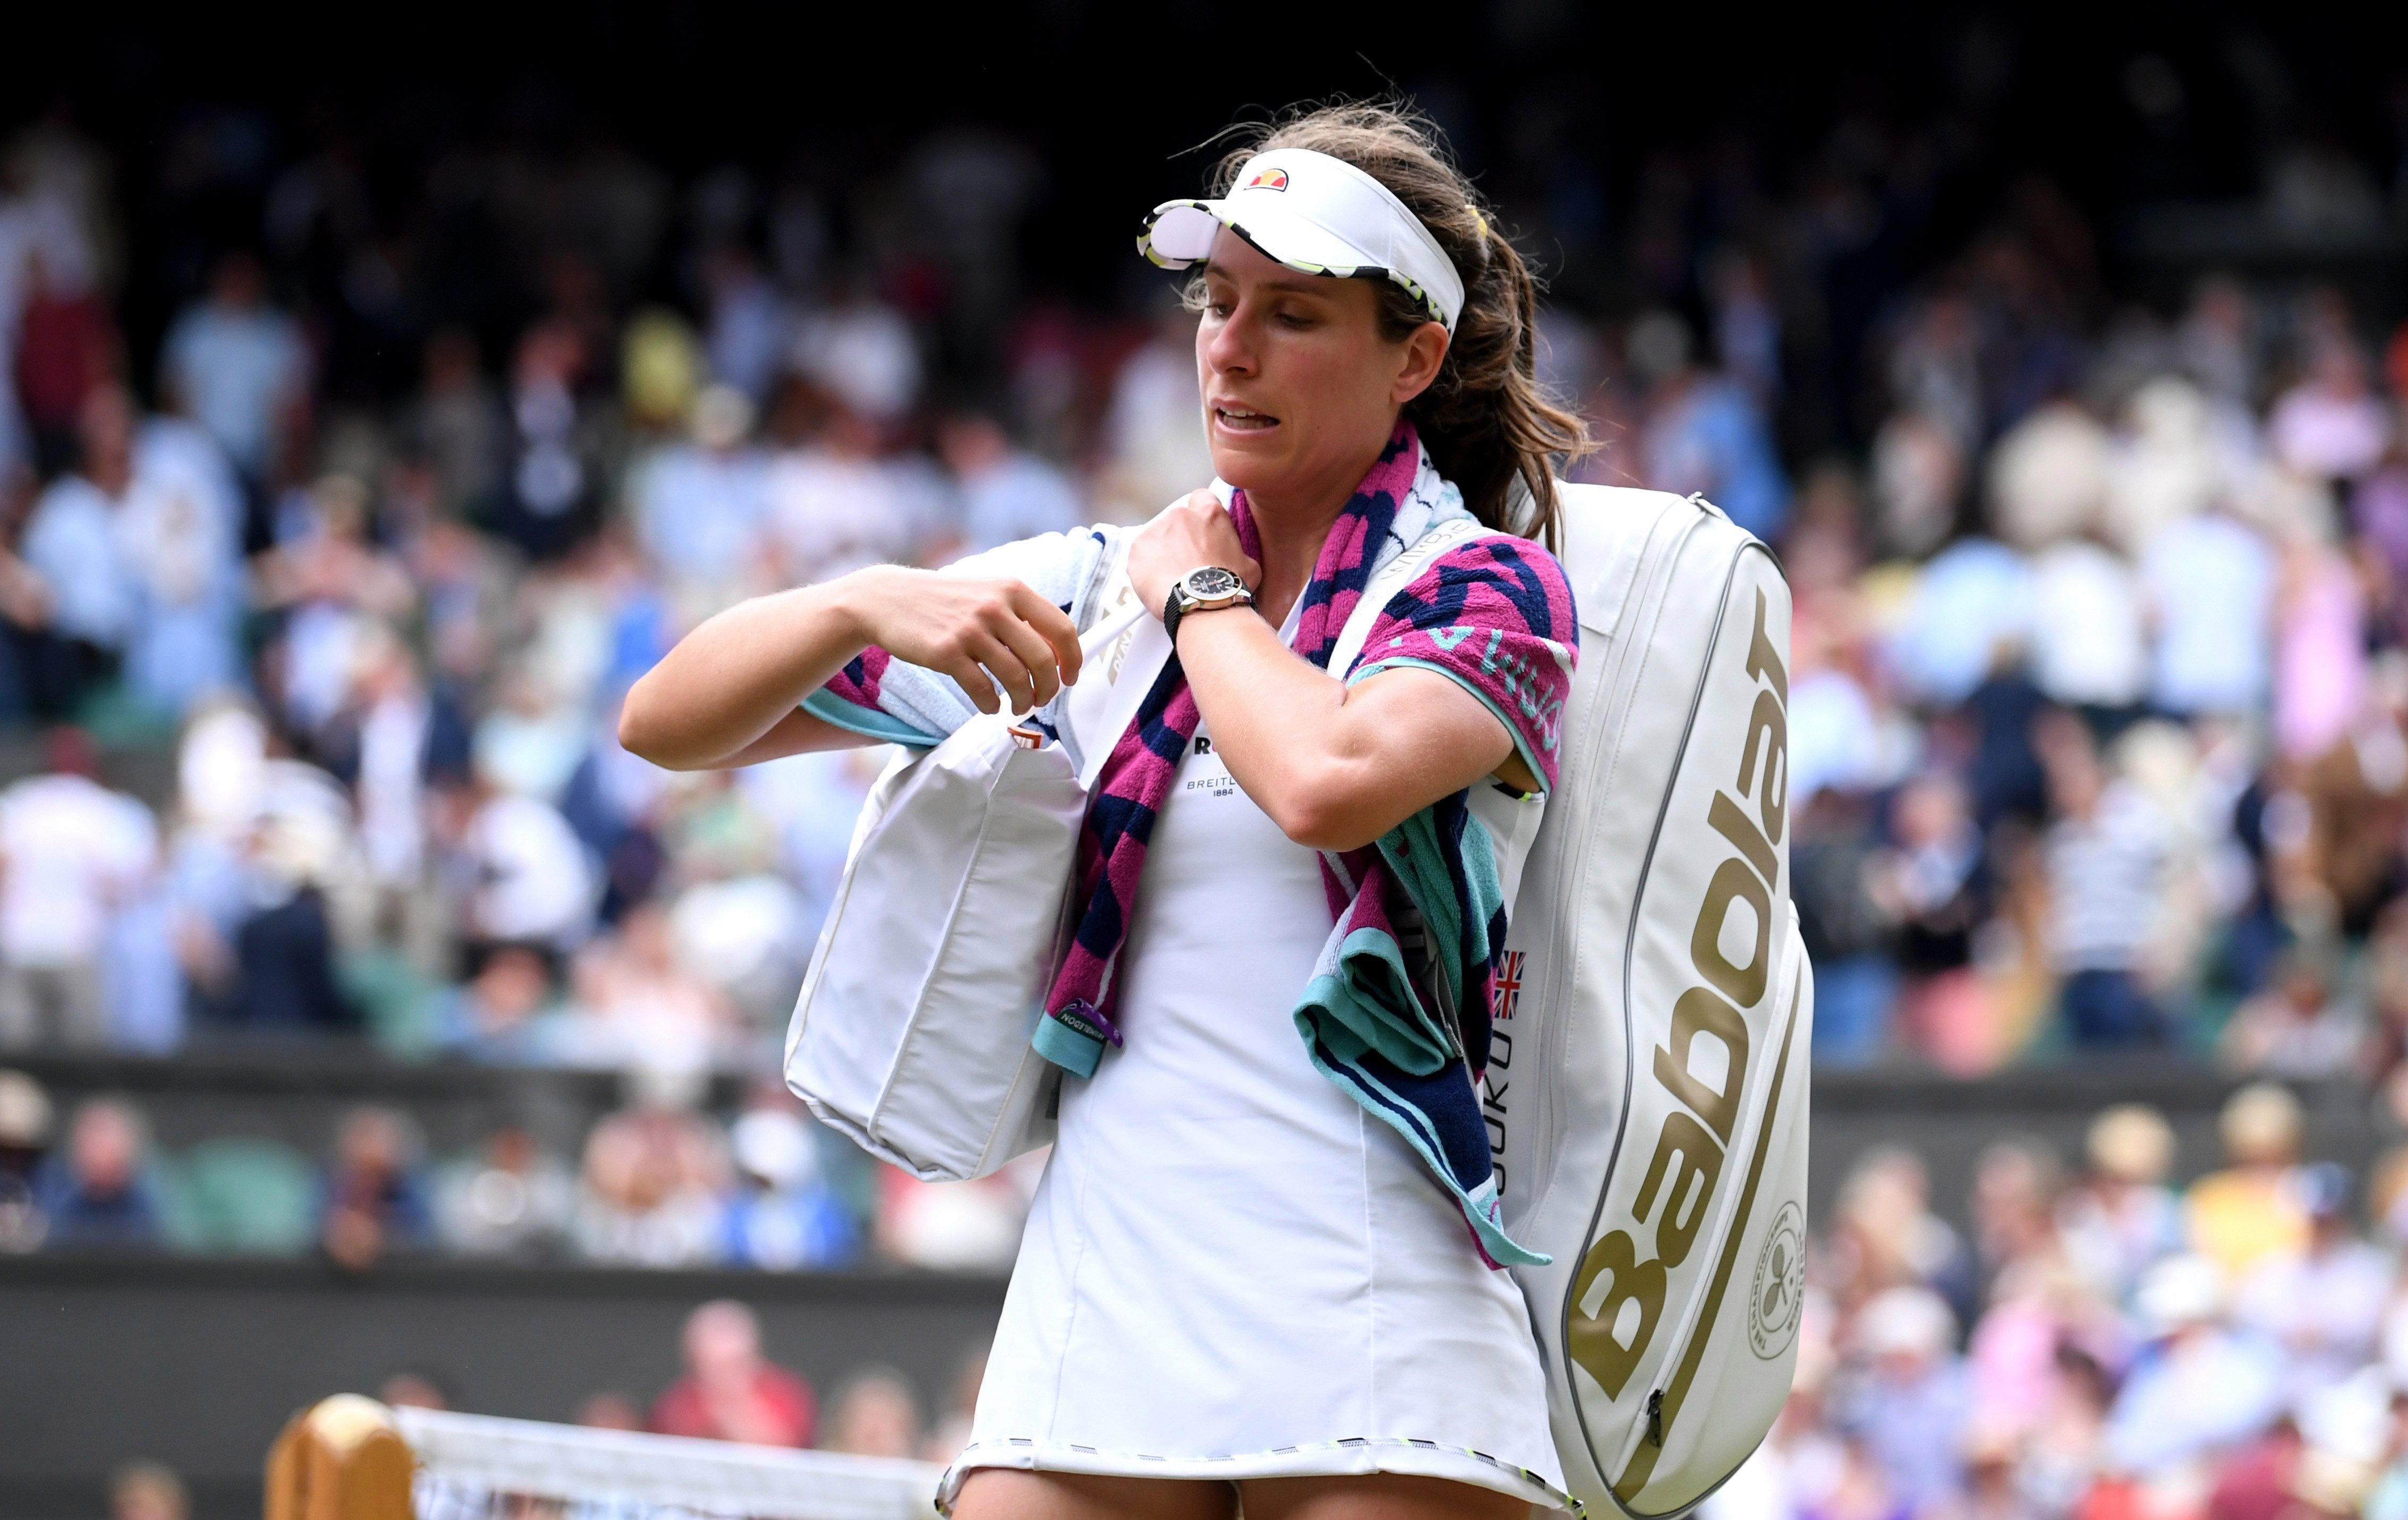 Konta had been tipped for glory at Wimbledon this year but exited at the quarter-finals